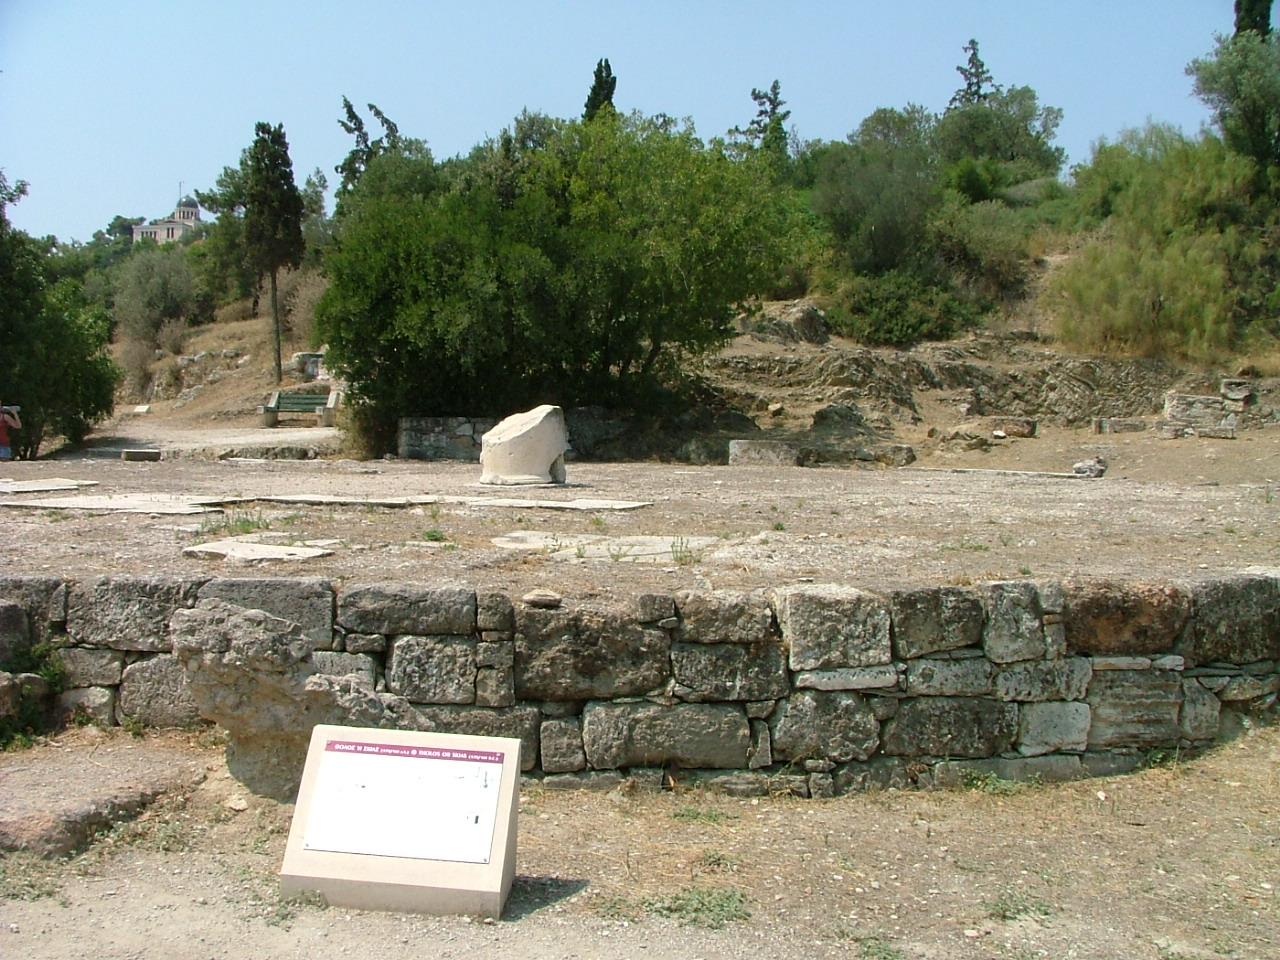 https://i0.wp.com/upload.wikimedia.org/wikipedia/commons/d/d2/Tholos_del_Agora_de_Atenas3.JPG